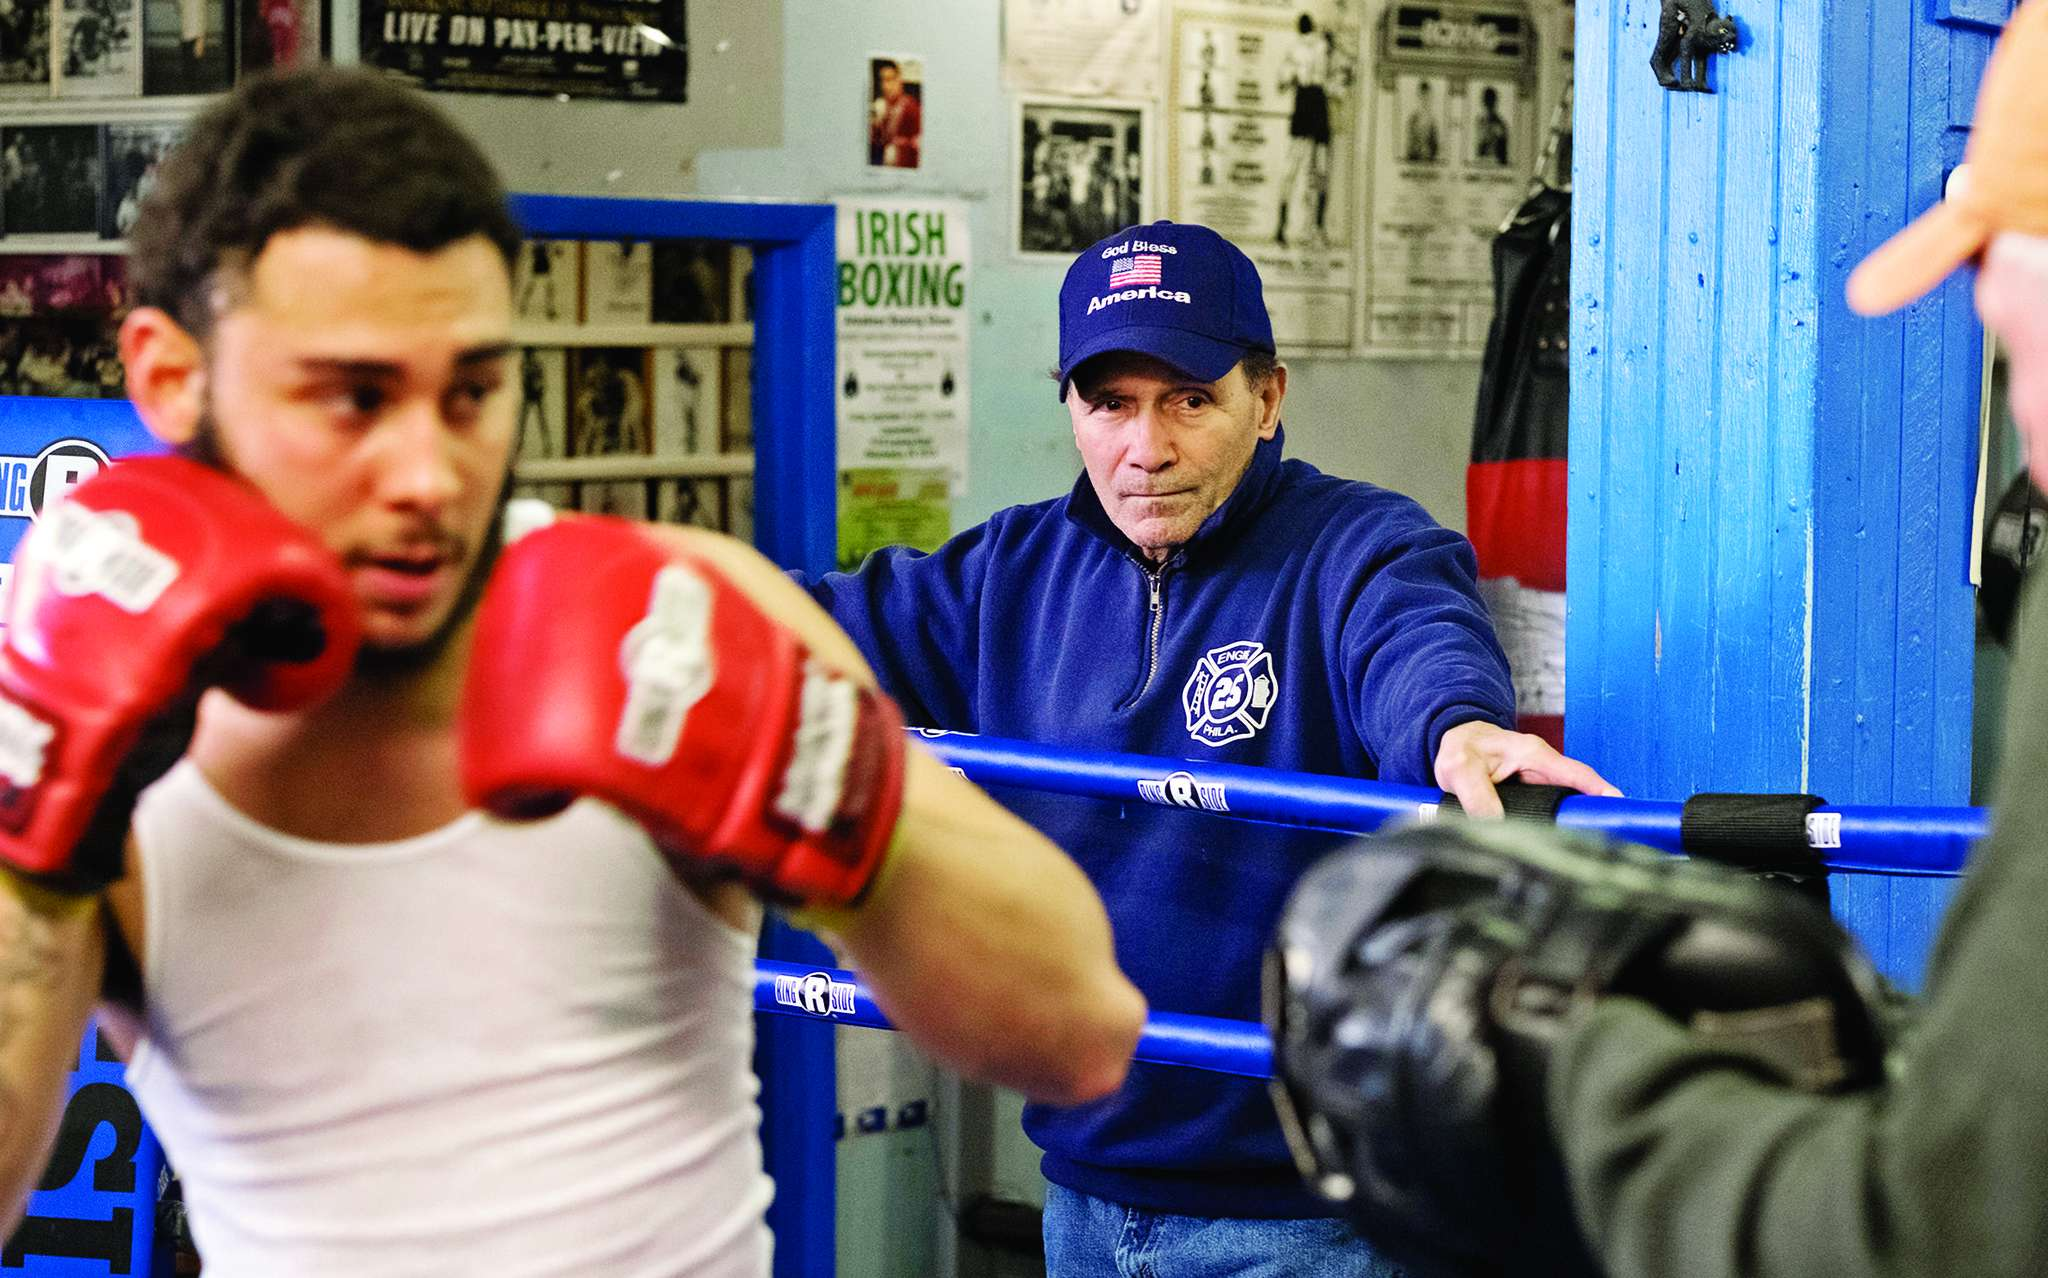 Charlie Sgrillo has run the Harrowgate boxing gym in Kensington for nearly 50 years, but he could lose it in a business dispute. Here he trains Andy Martinez, 17.